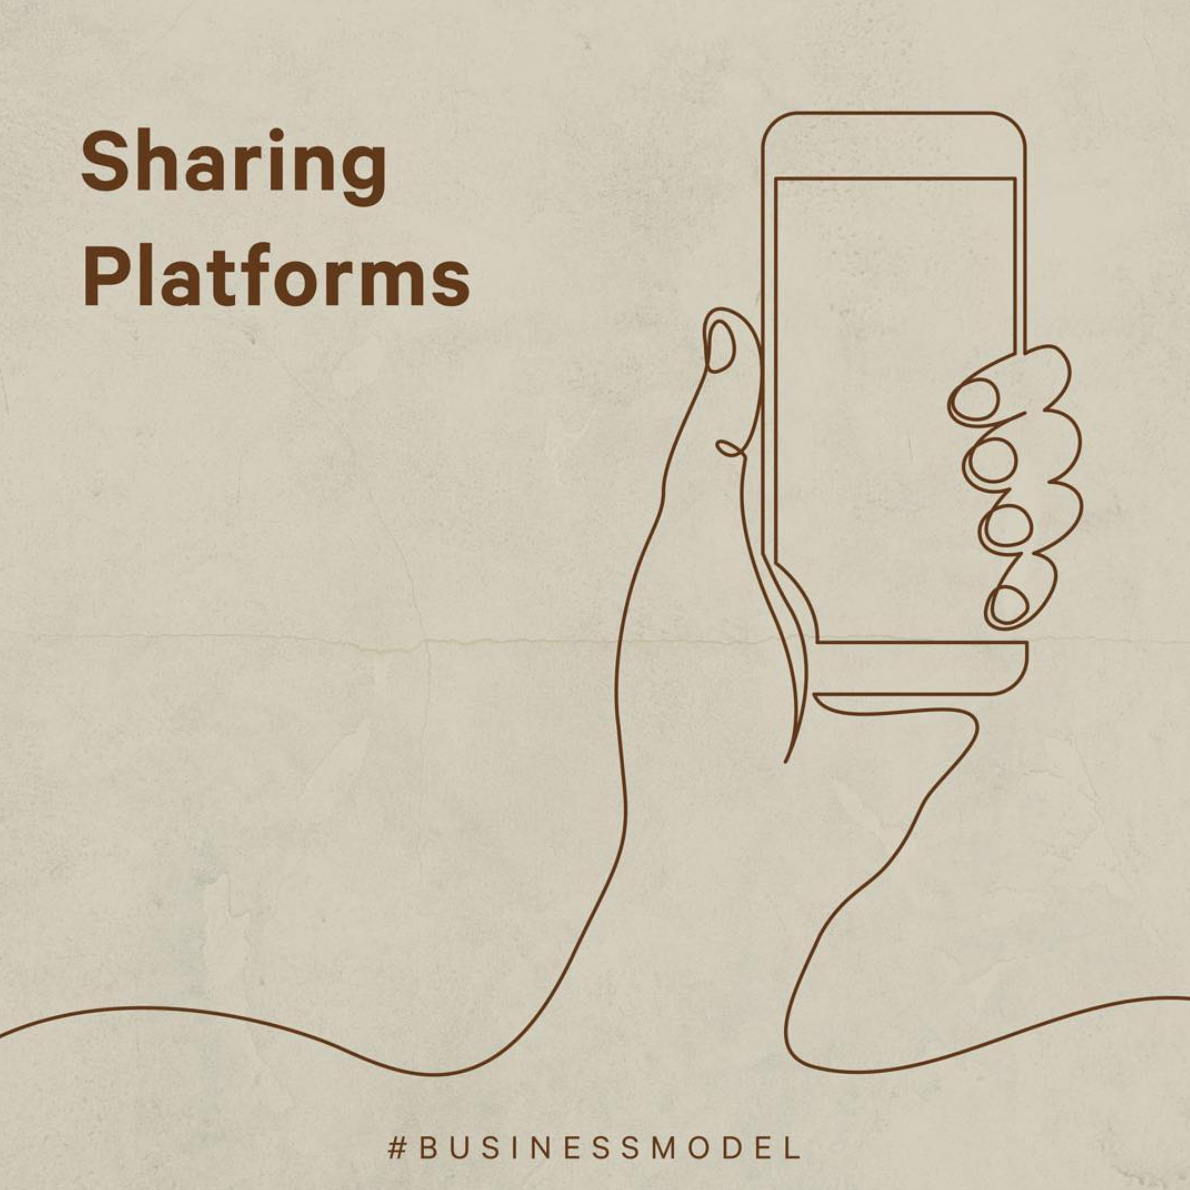 Sharing Platforms - You're probably most readily familiar with this business model. In fact, it builds upon a form of financial and social empowerment of humanity since time immemorial. Today, ventures such as carpool, lodging, and crowdfunding apps encourage renting, selling, sharing, and reuse of resources. Dahlberg reports industry revenues to be about $30 billion yearly, and it's even expected to grow by as much as 30% in the near future.